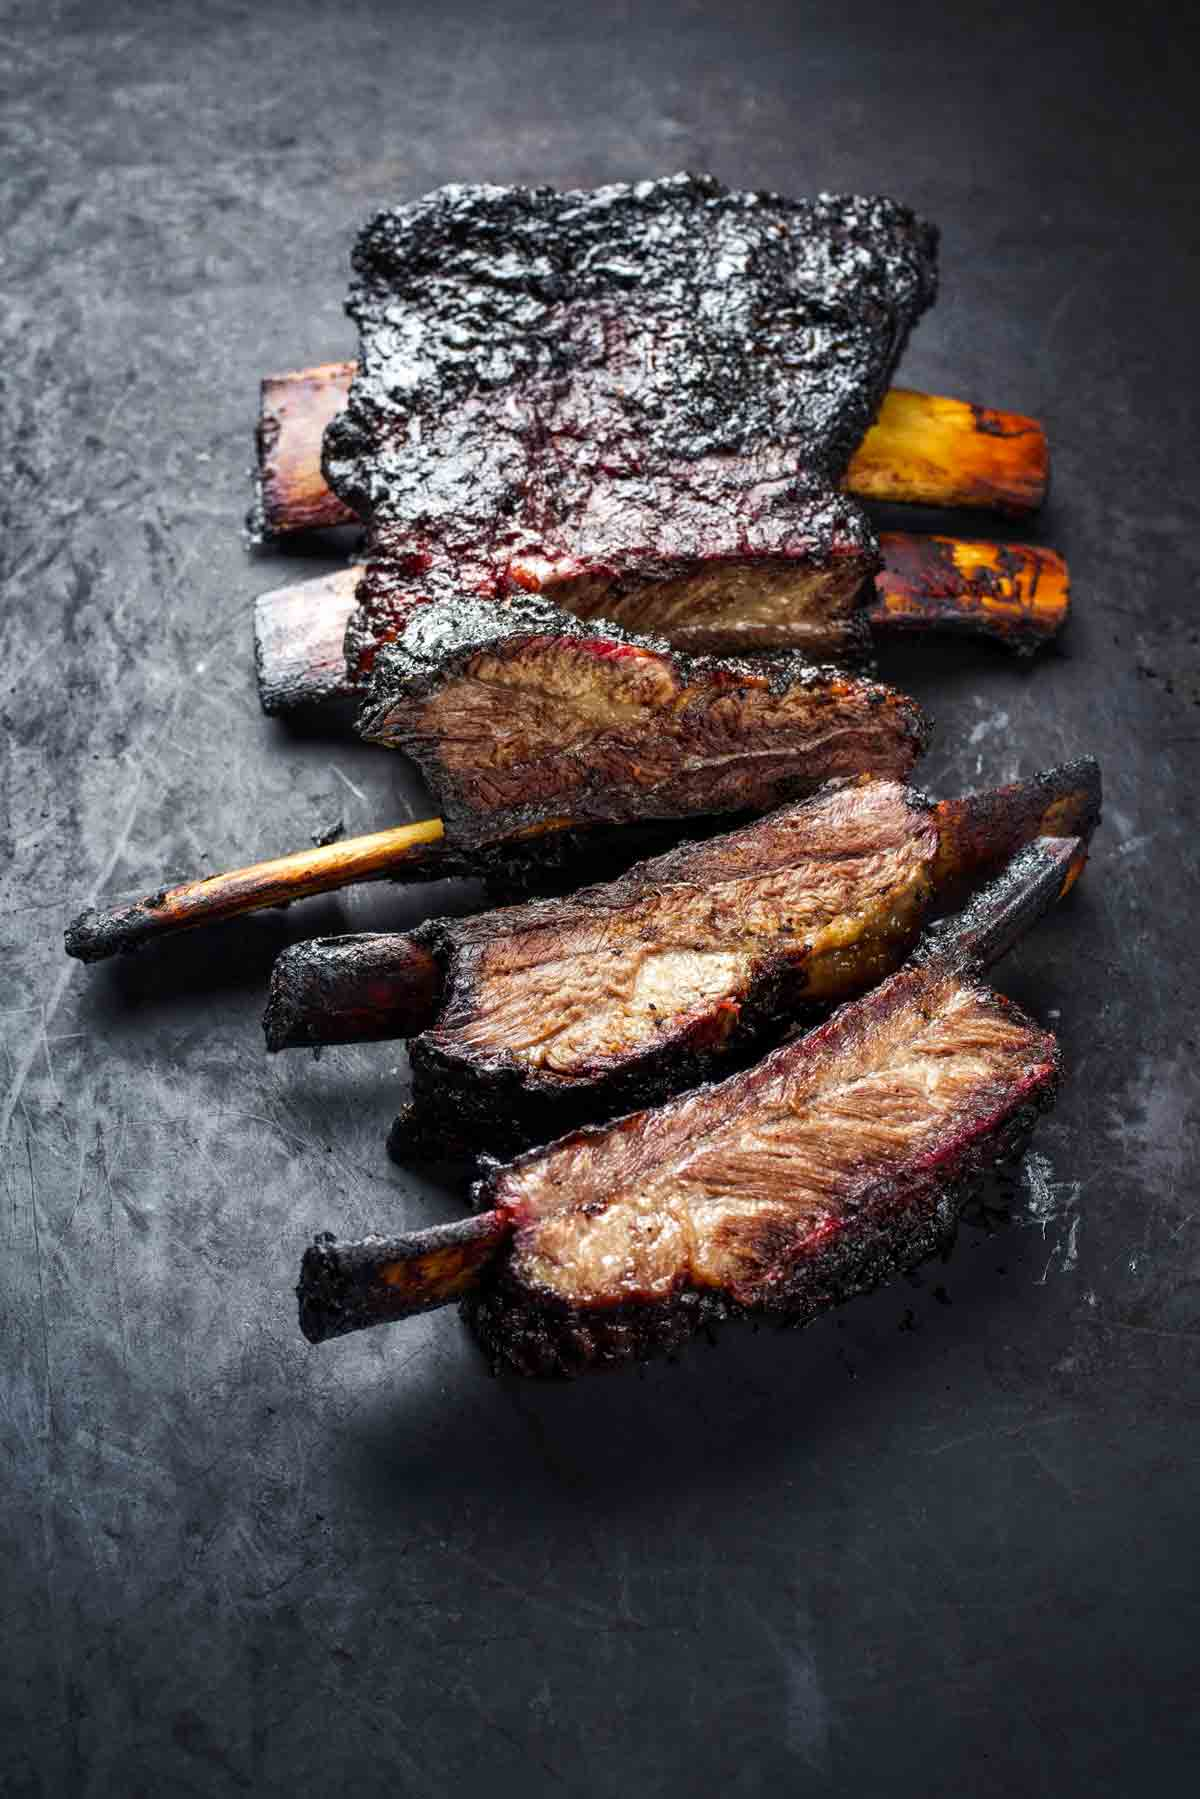 A slab of barbecued beef back ribs cut into individual ribs.